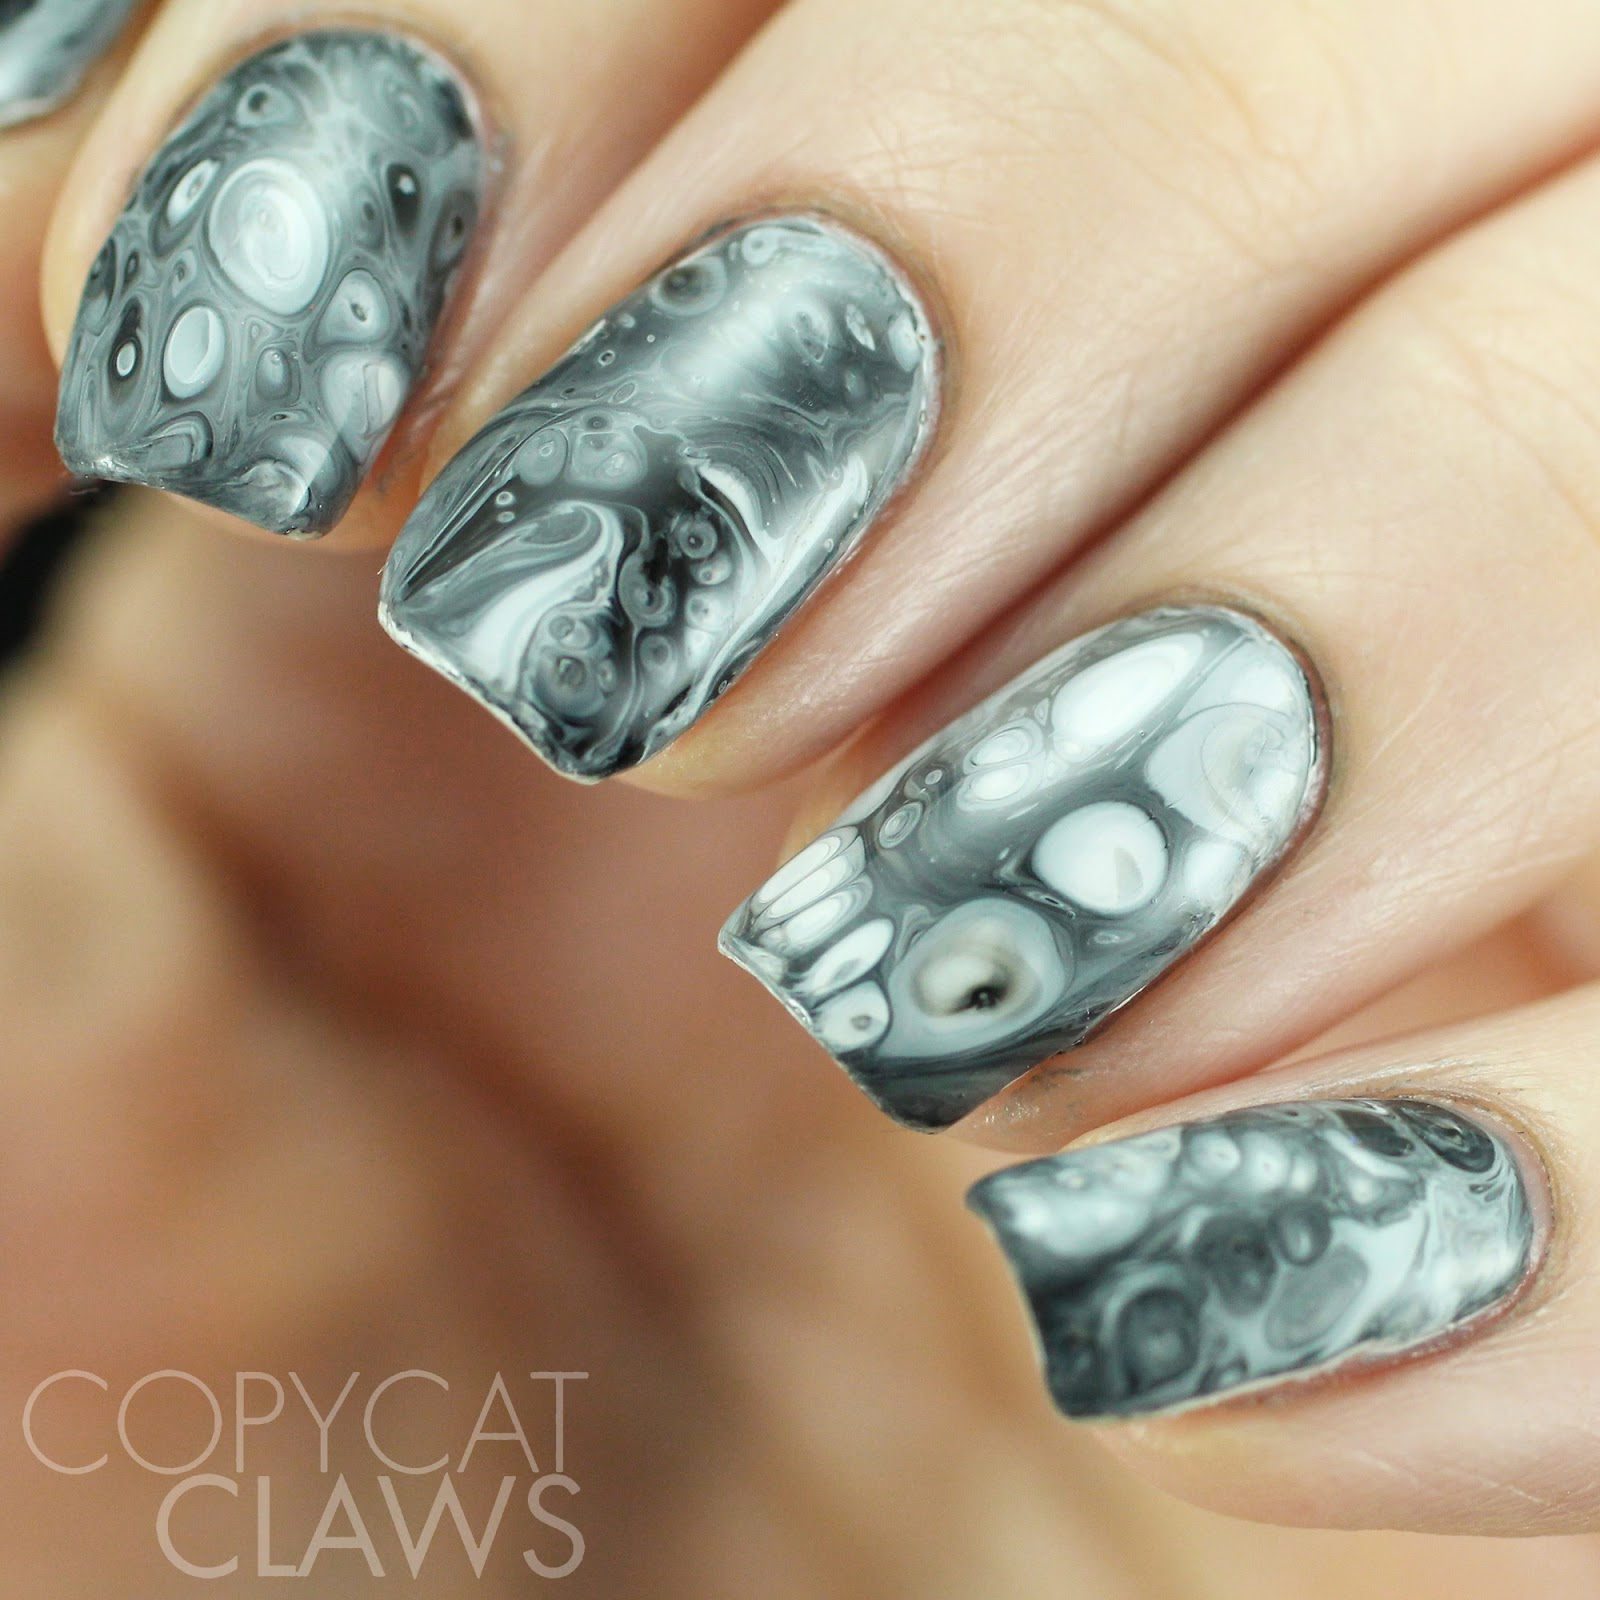 Copycat Claws: 26 Great Nail Art Ideas - Made On A Mat